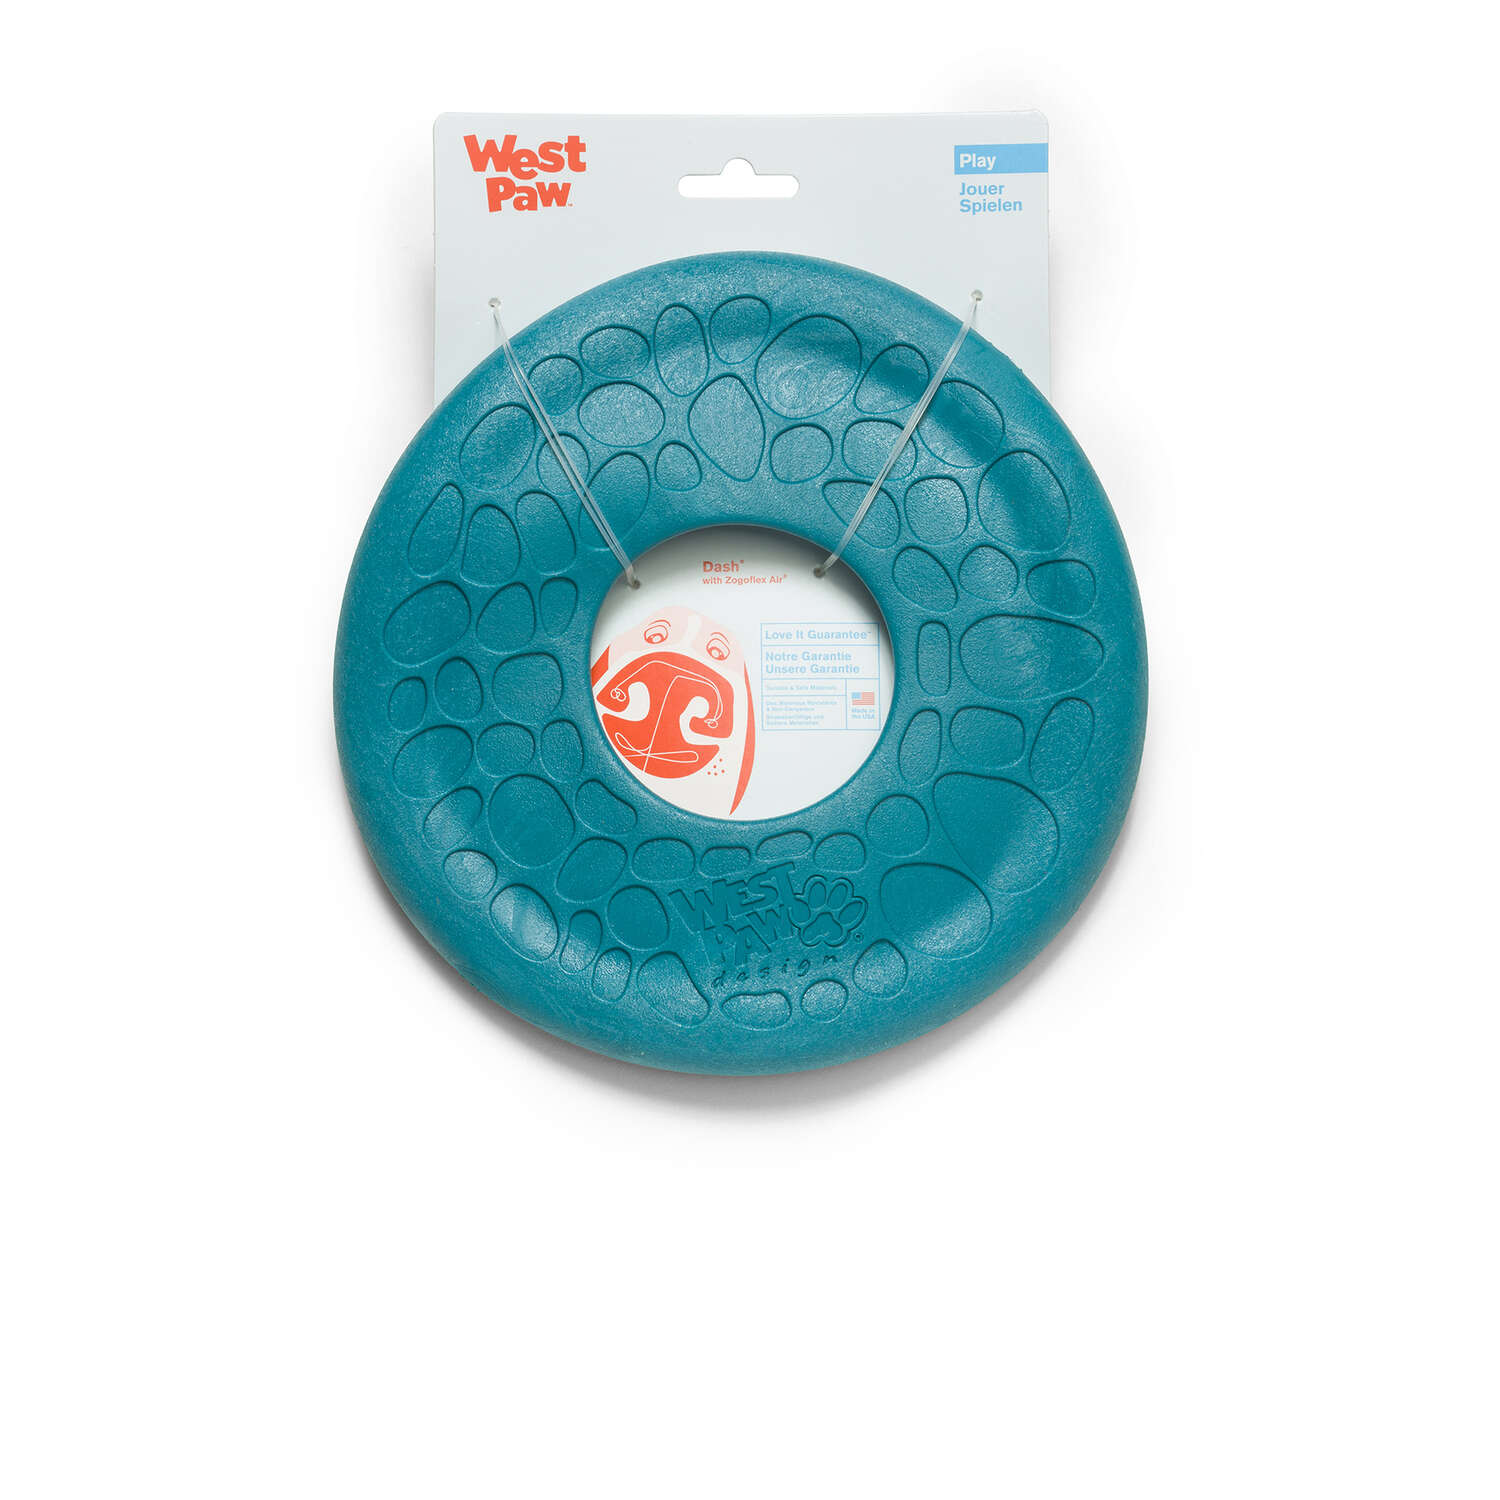 West Paw  Zogoflex Air  Blue  Disc  Frisbee  Medium  Synthetic Rubber